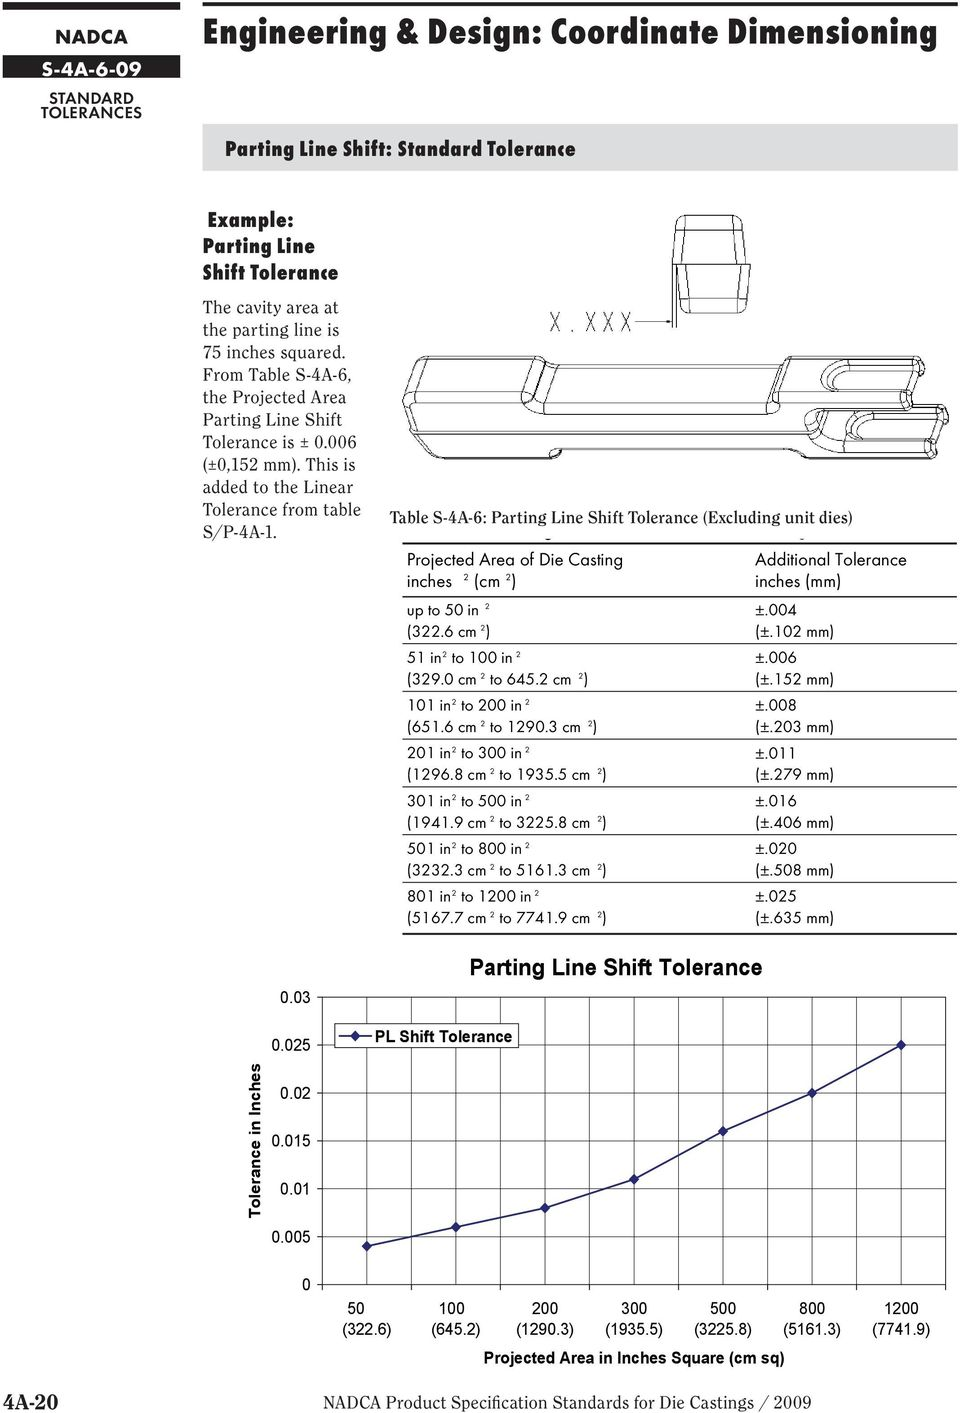 025 Table S--6: Parting Line Shift Tolerance (Excluding unit dies) Table SP-4-6 Parting Line Shift Tolerance (excluding unit dies) Projected Area of Die Casting inches 2 (cm 2 ) up to 50 in 2 (322.